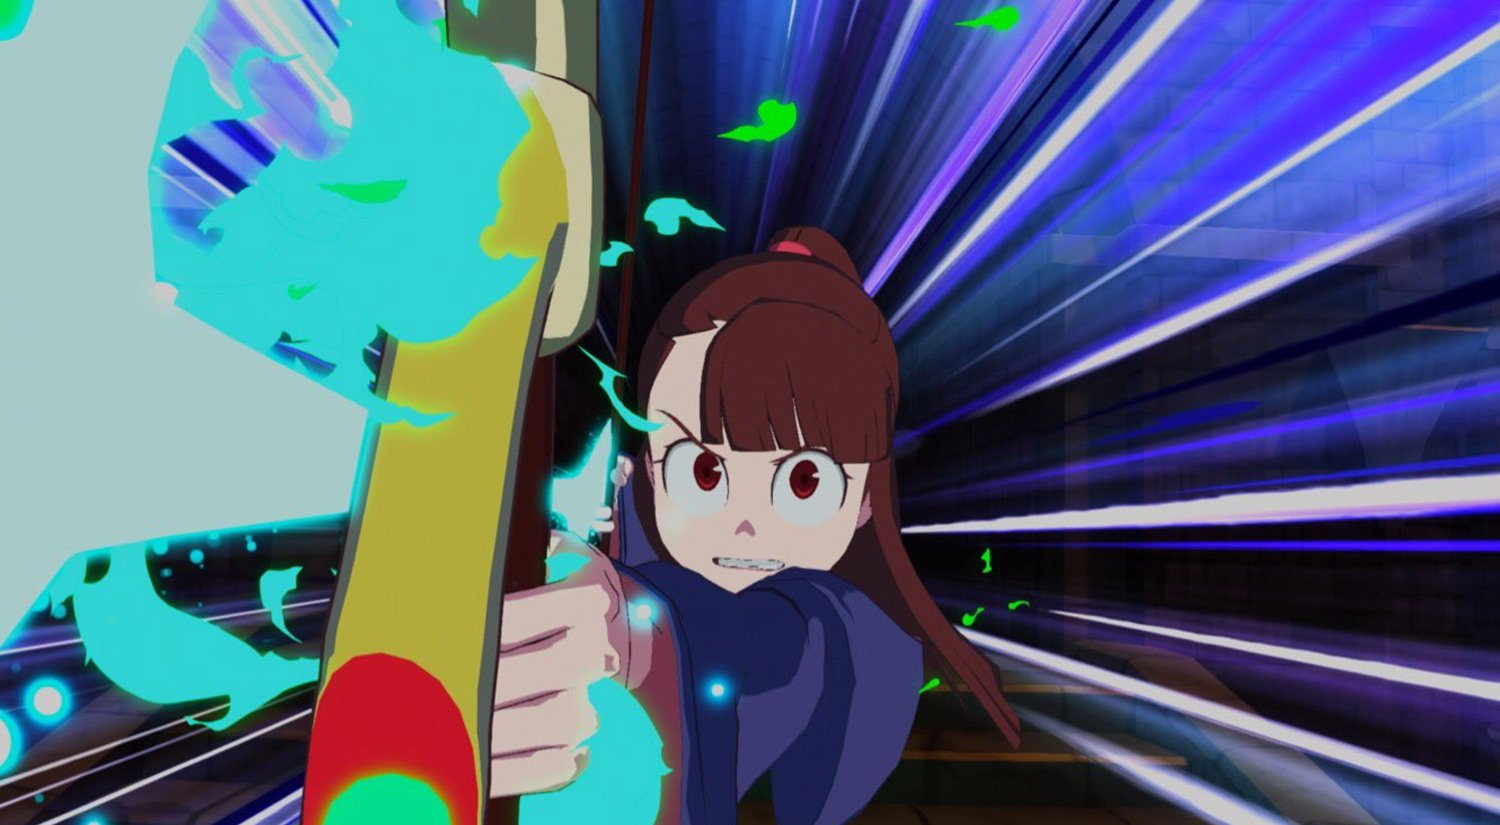 Little Witch Academia game coming to the PS4 screenshot